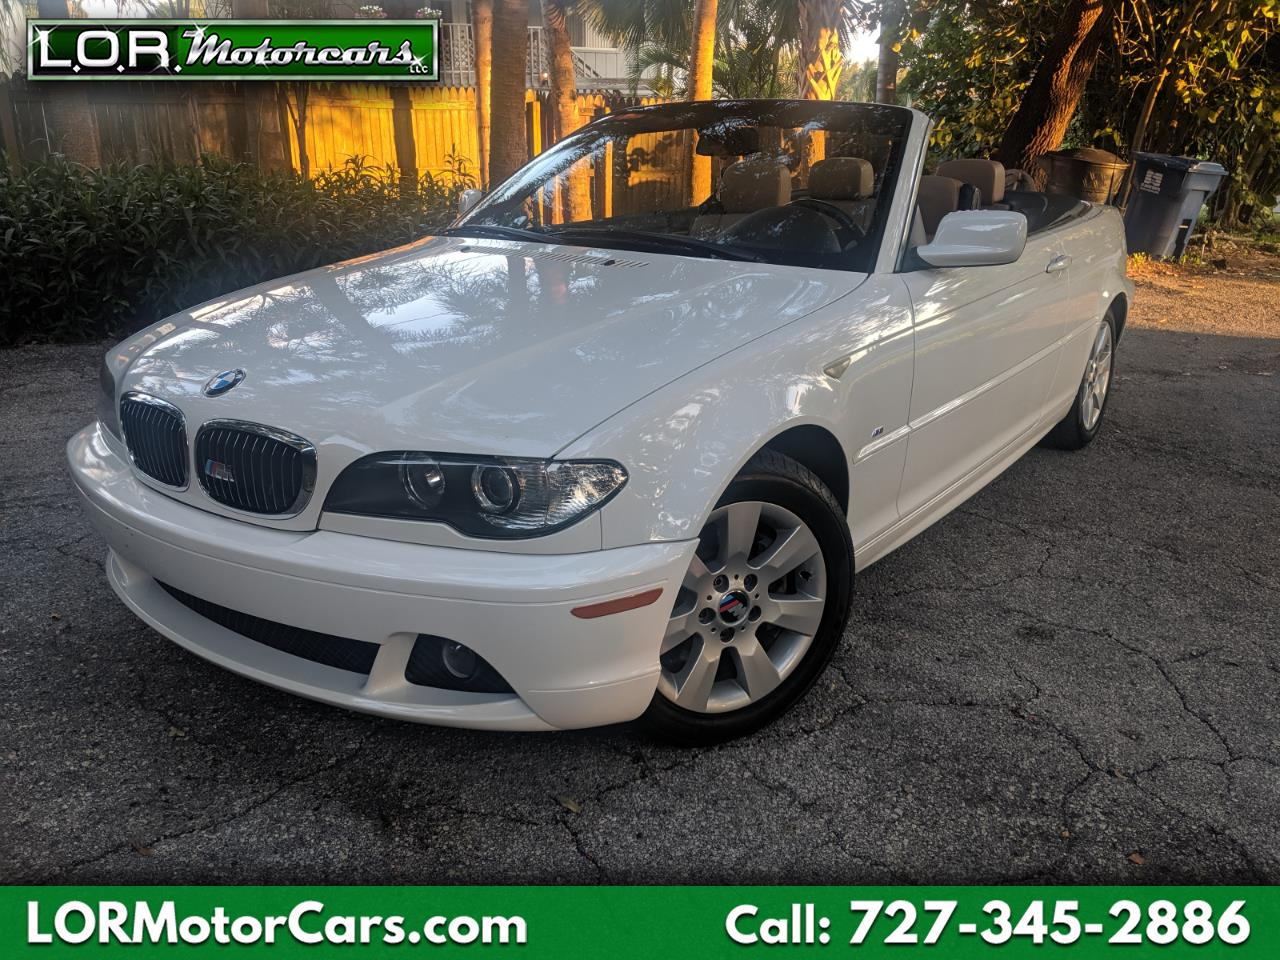 2006 BMW 3-Series 325Ci convertible